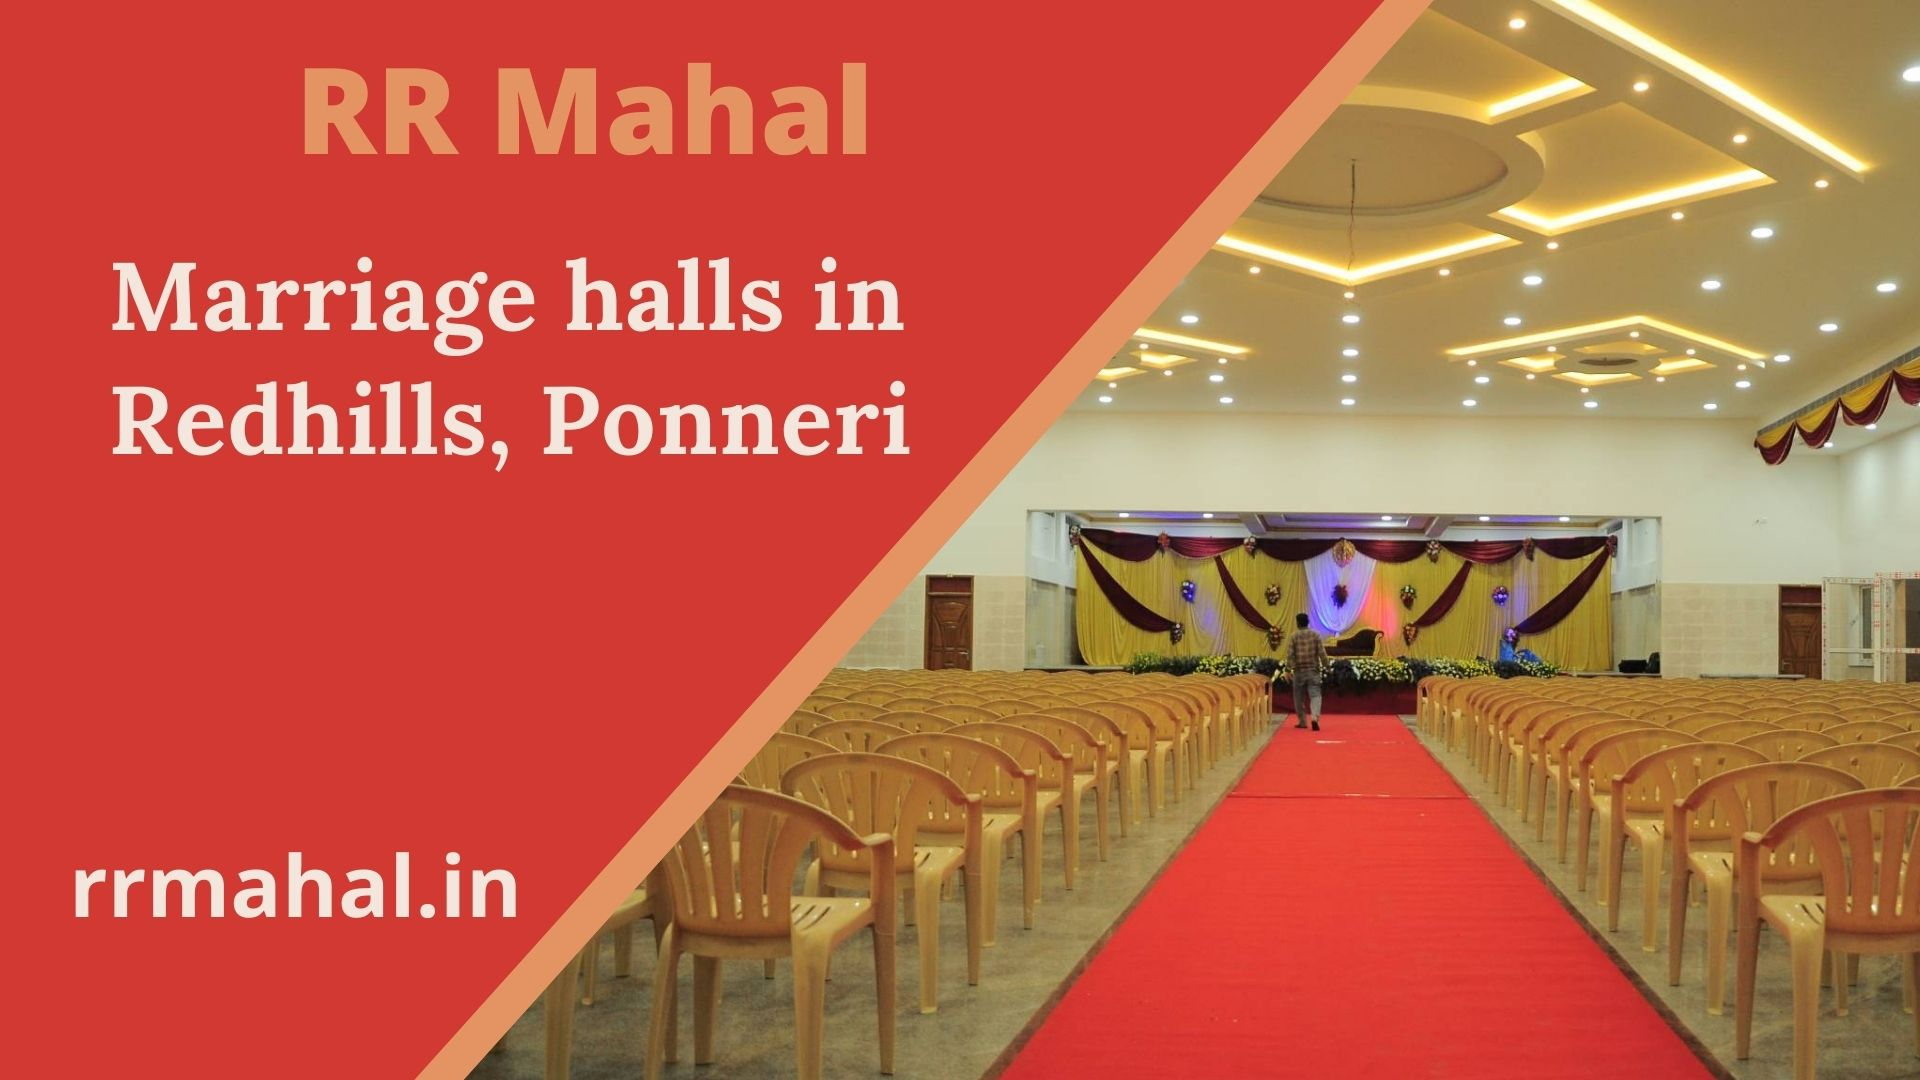 RR Mahal - Best Marriage Halls In Chennai